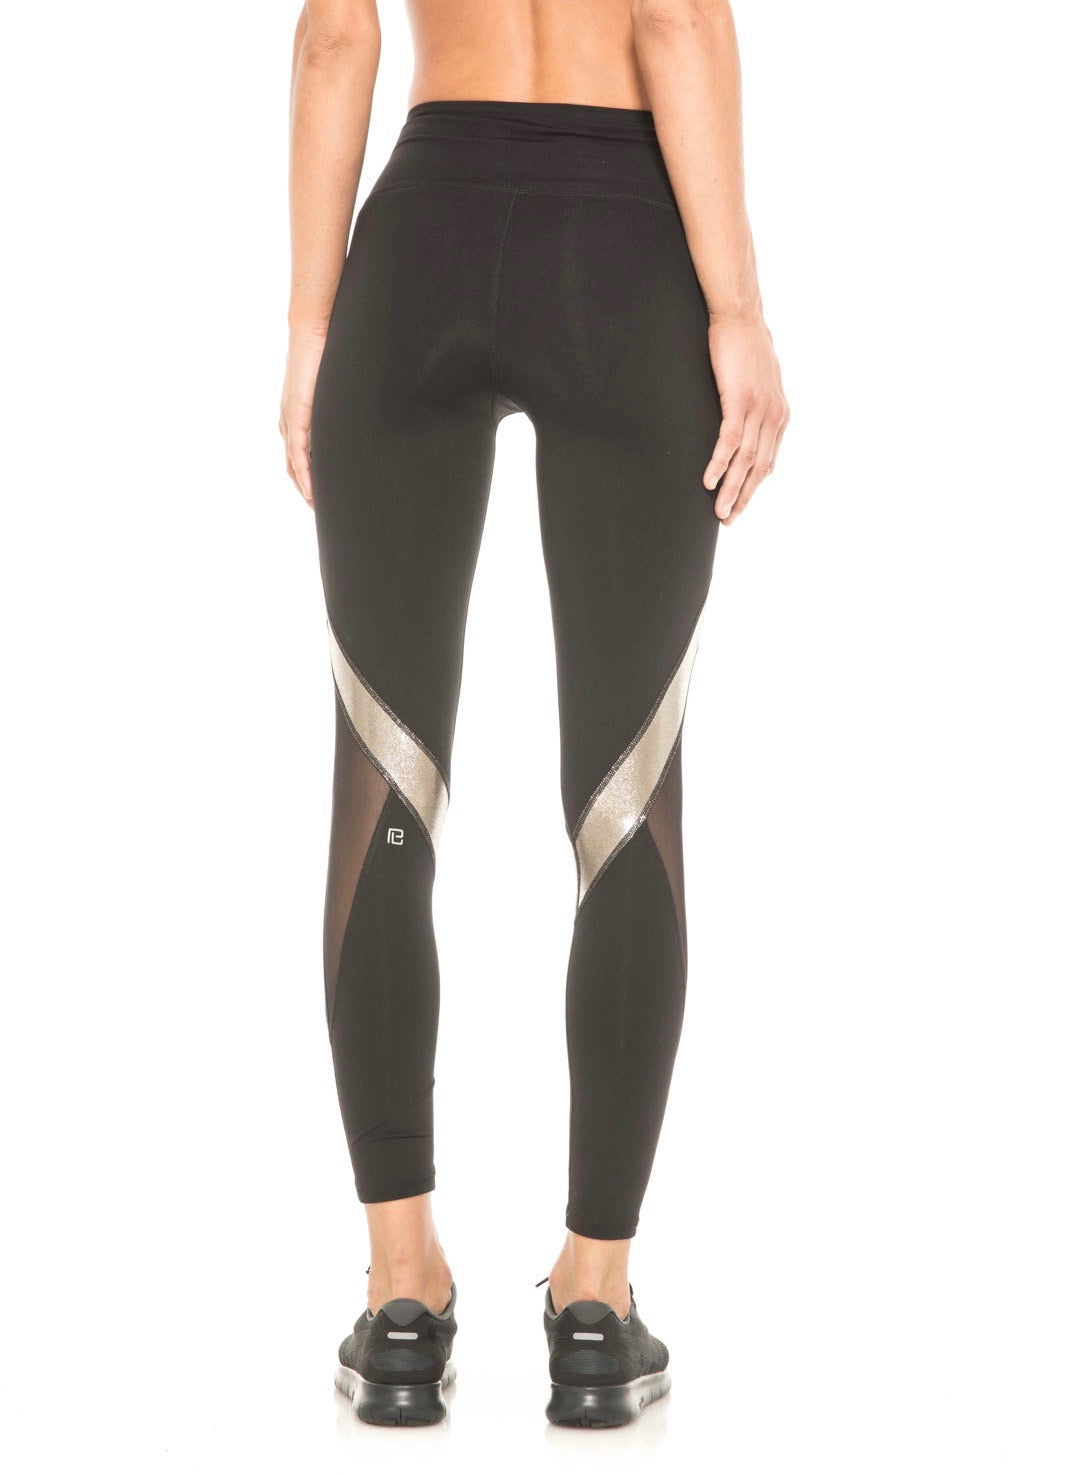 Women - Apparel - Active Wear - Bottom:Body Language Sportswear:Paradise Legging:WKND threads